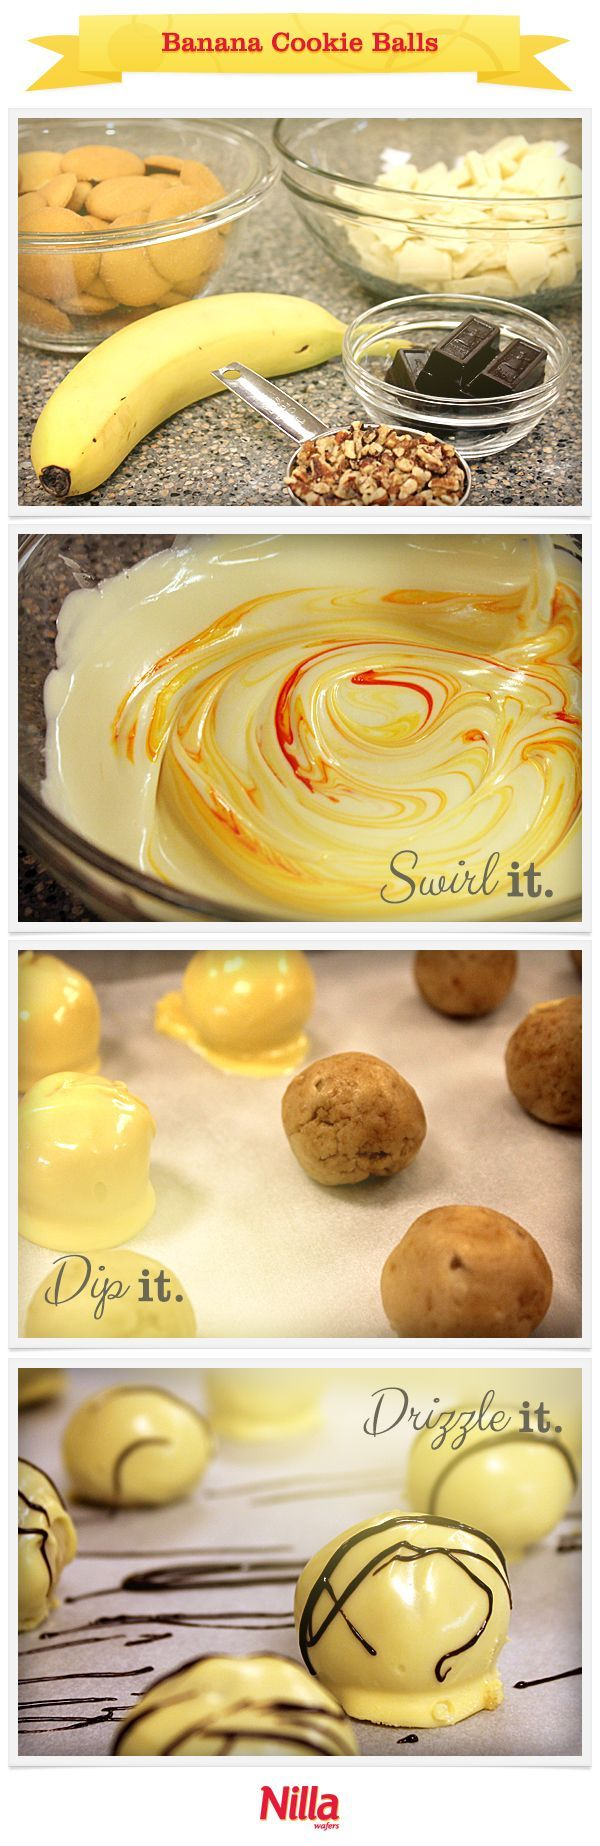 Nanner balls!  I add a little sugar and vanilla to the mix and they're great!